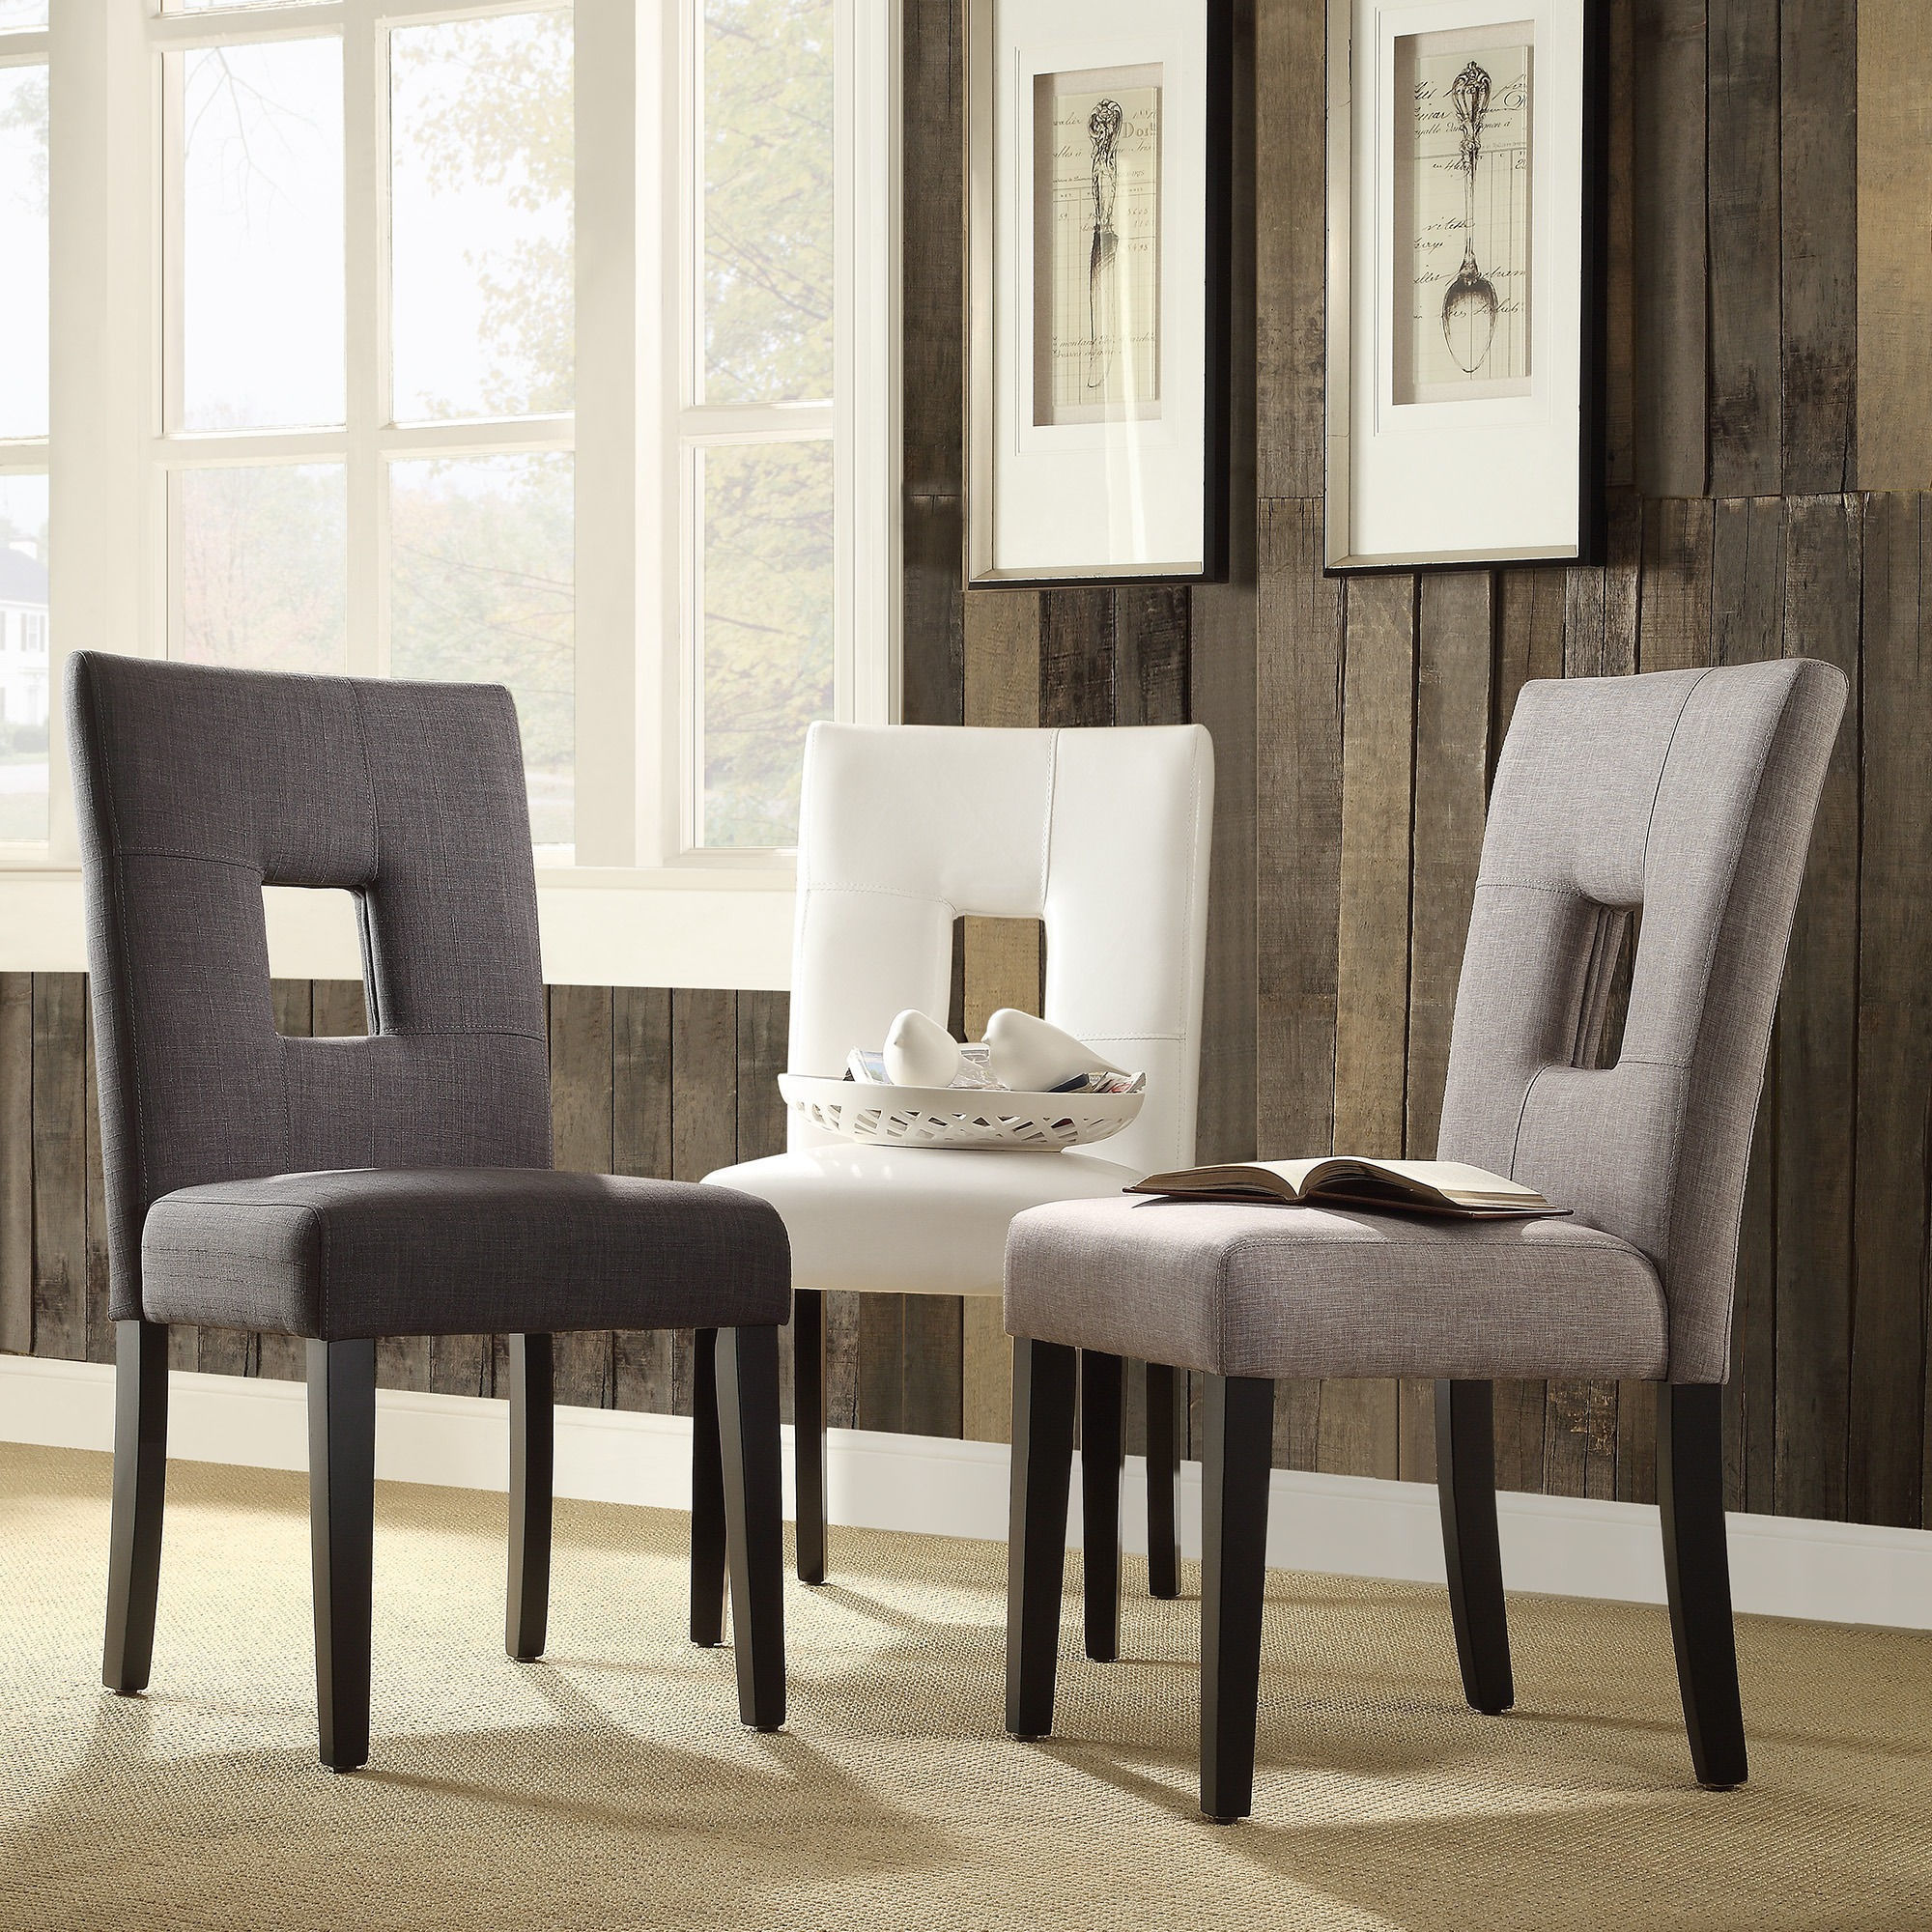 Mendoza Keyhole Back Dining Chairs (Set of 2) by iNSPIRE Q ...